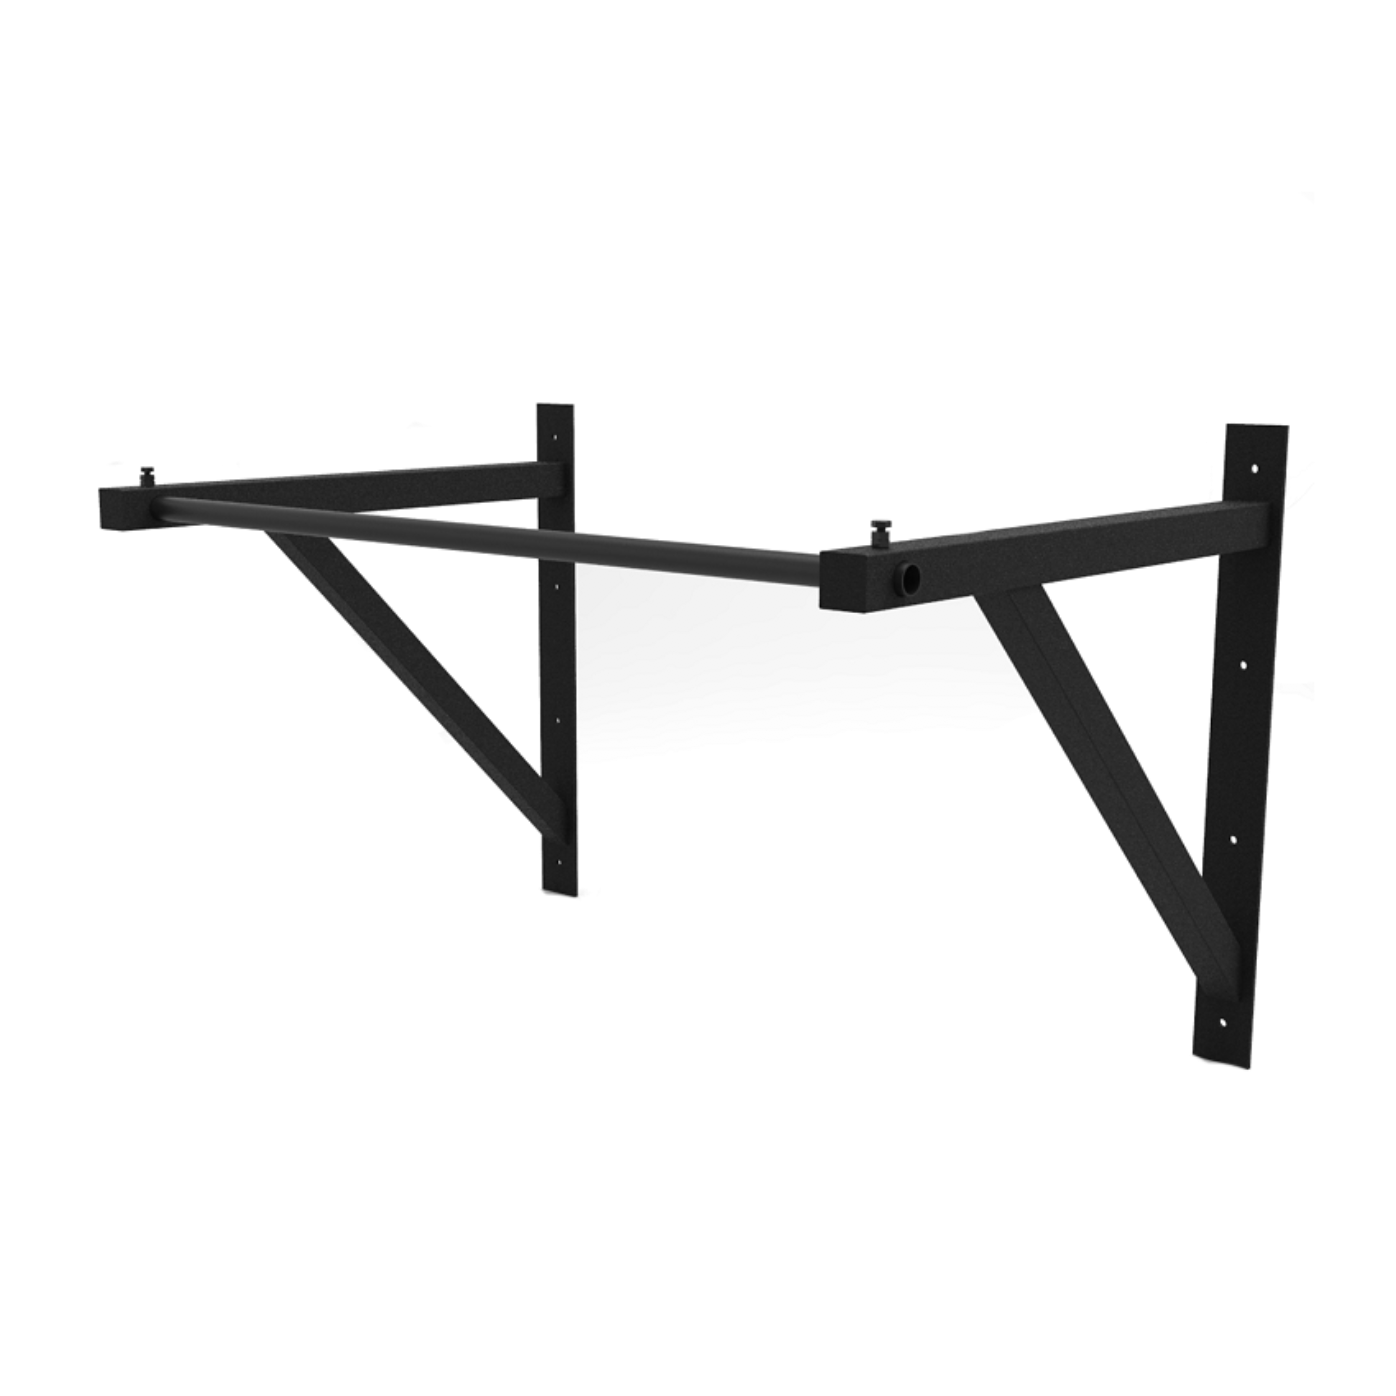 P-1 Wall Mount Pull-Up System - Currently Out of Stock